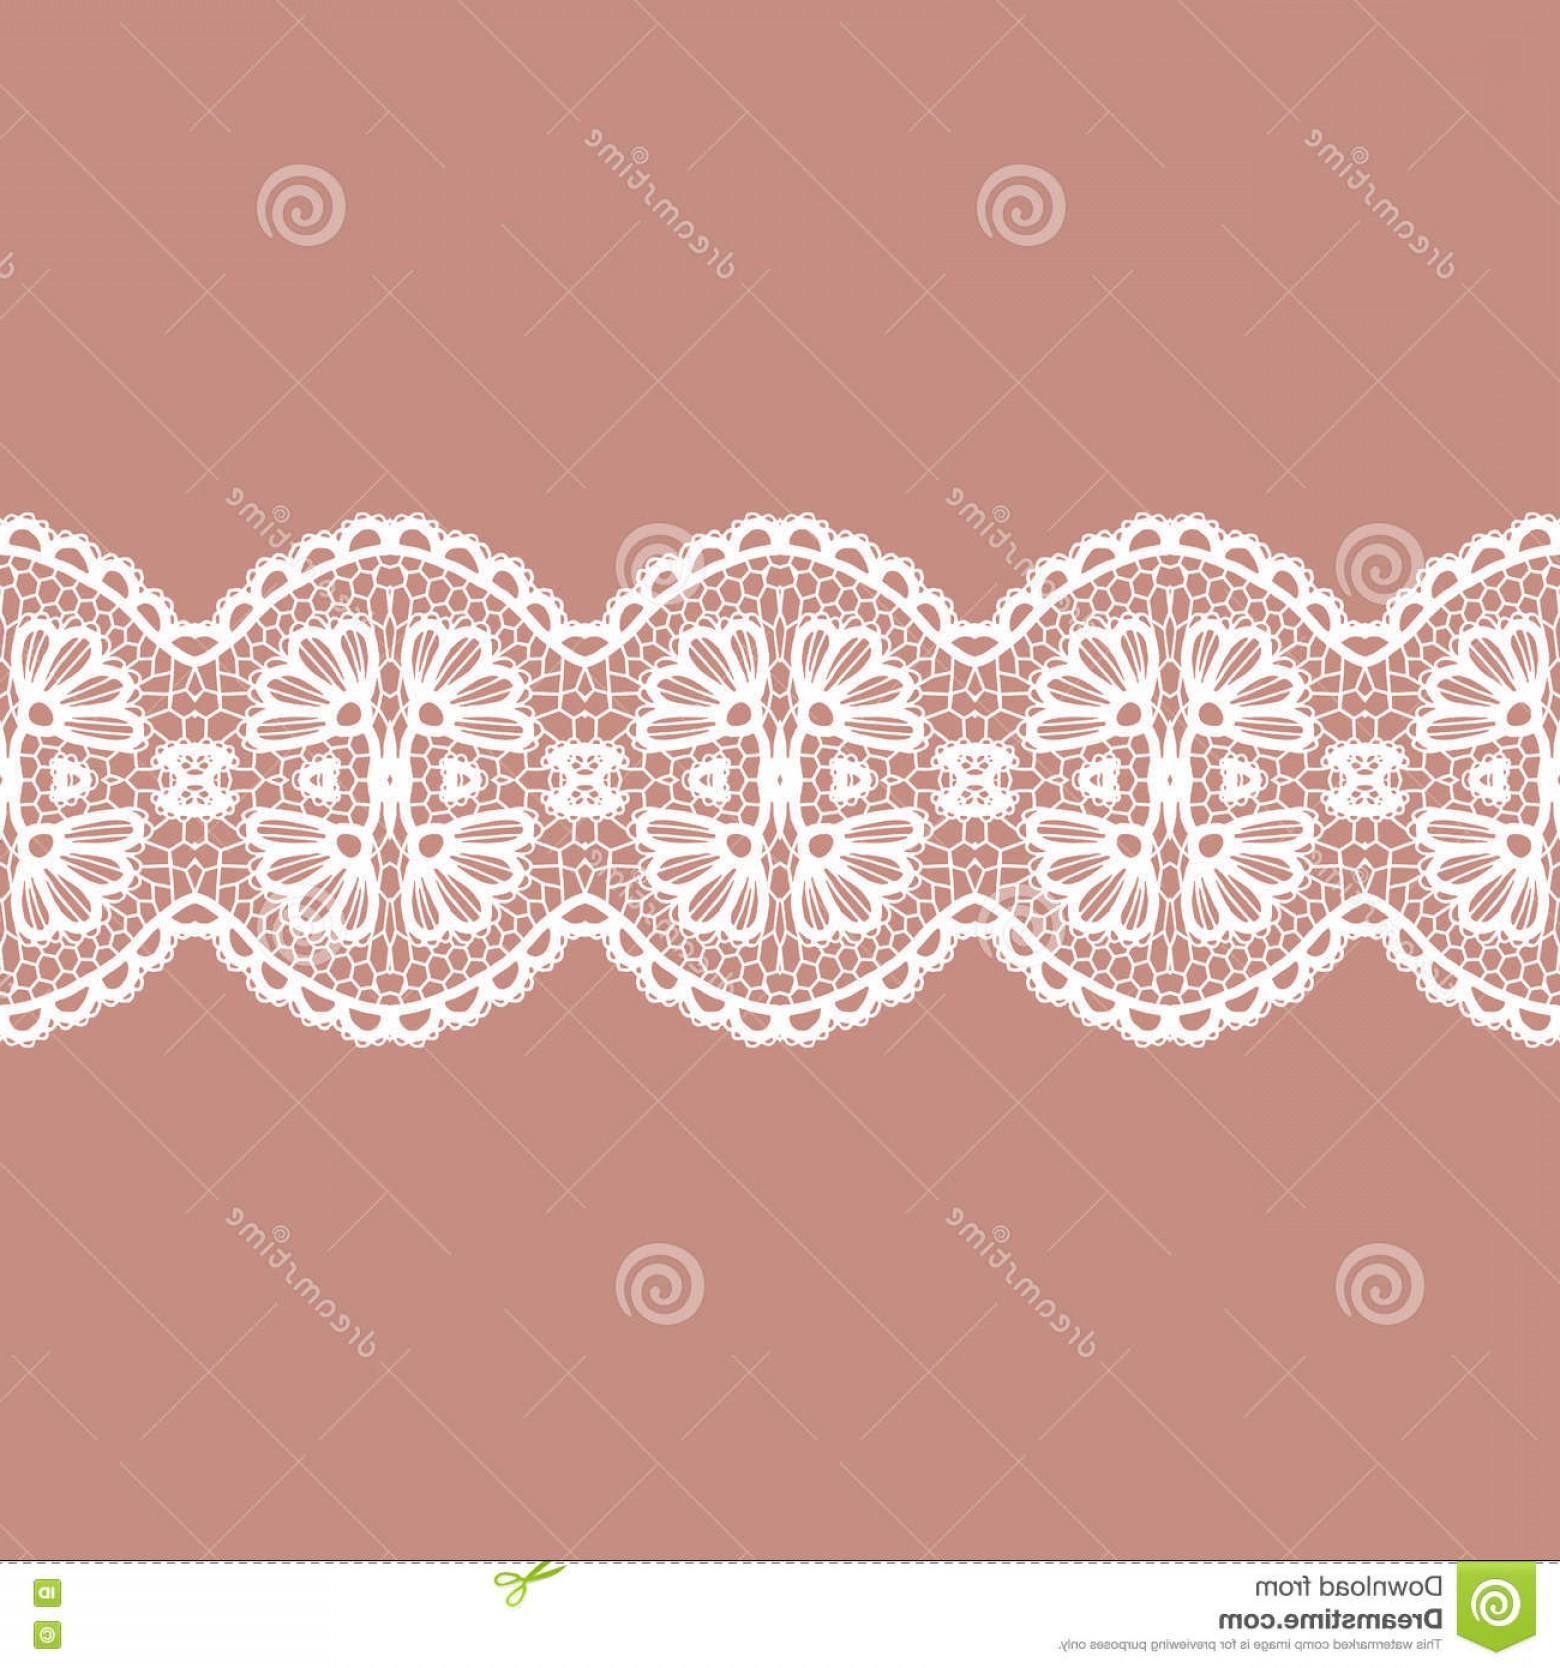 Vector Can Trim White: Stock Illustration Lacy Vintage Trim White Elegant Vector Illustration Image